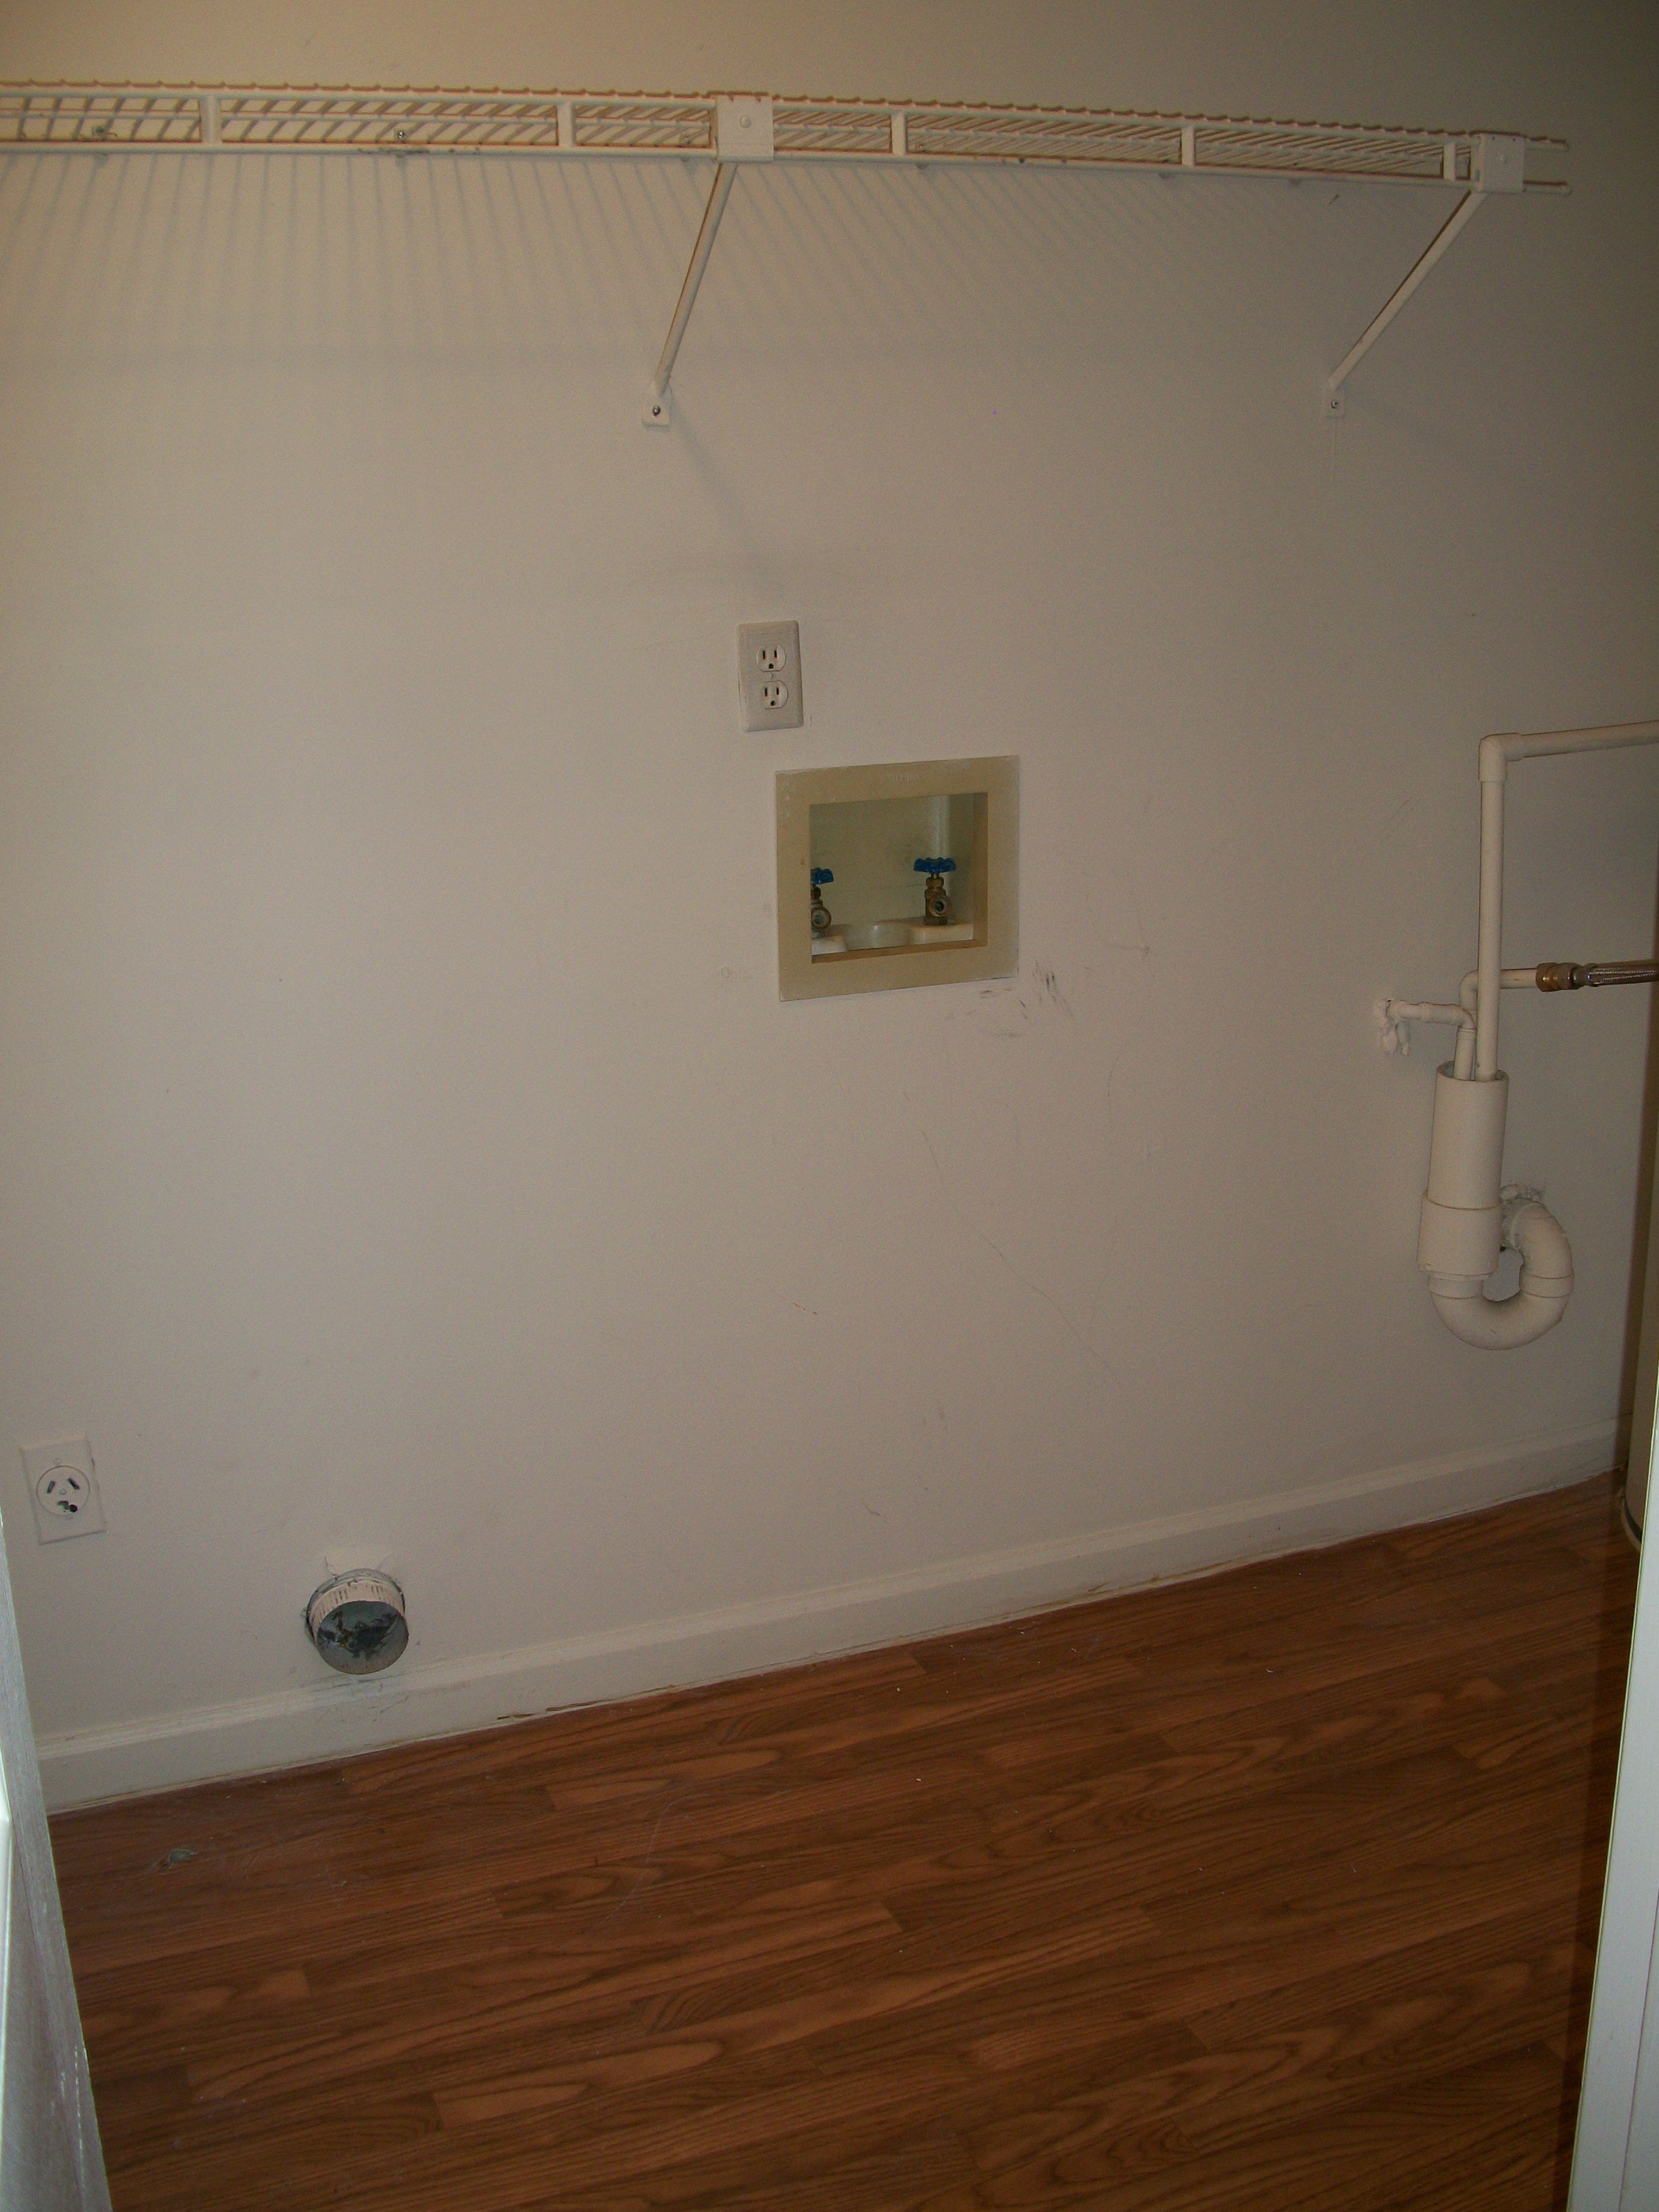 Rent Apartment The Mews Loganville Ga Apartments For Rent Cheap Apartment For Rent Furnished Apartments For Rent